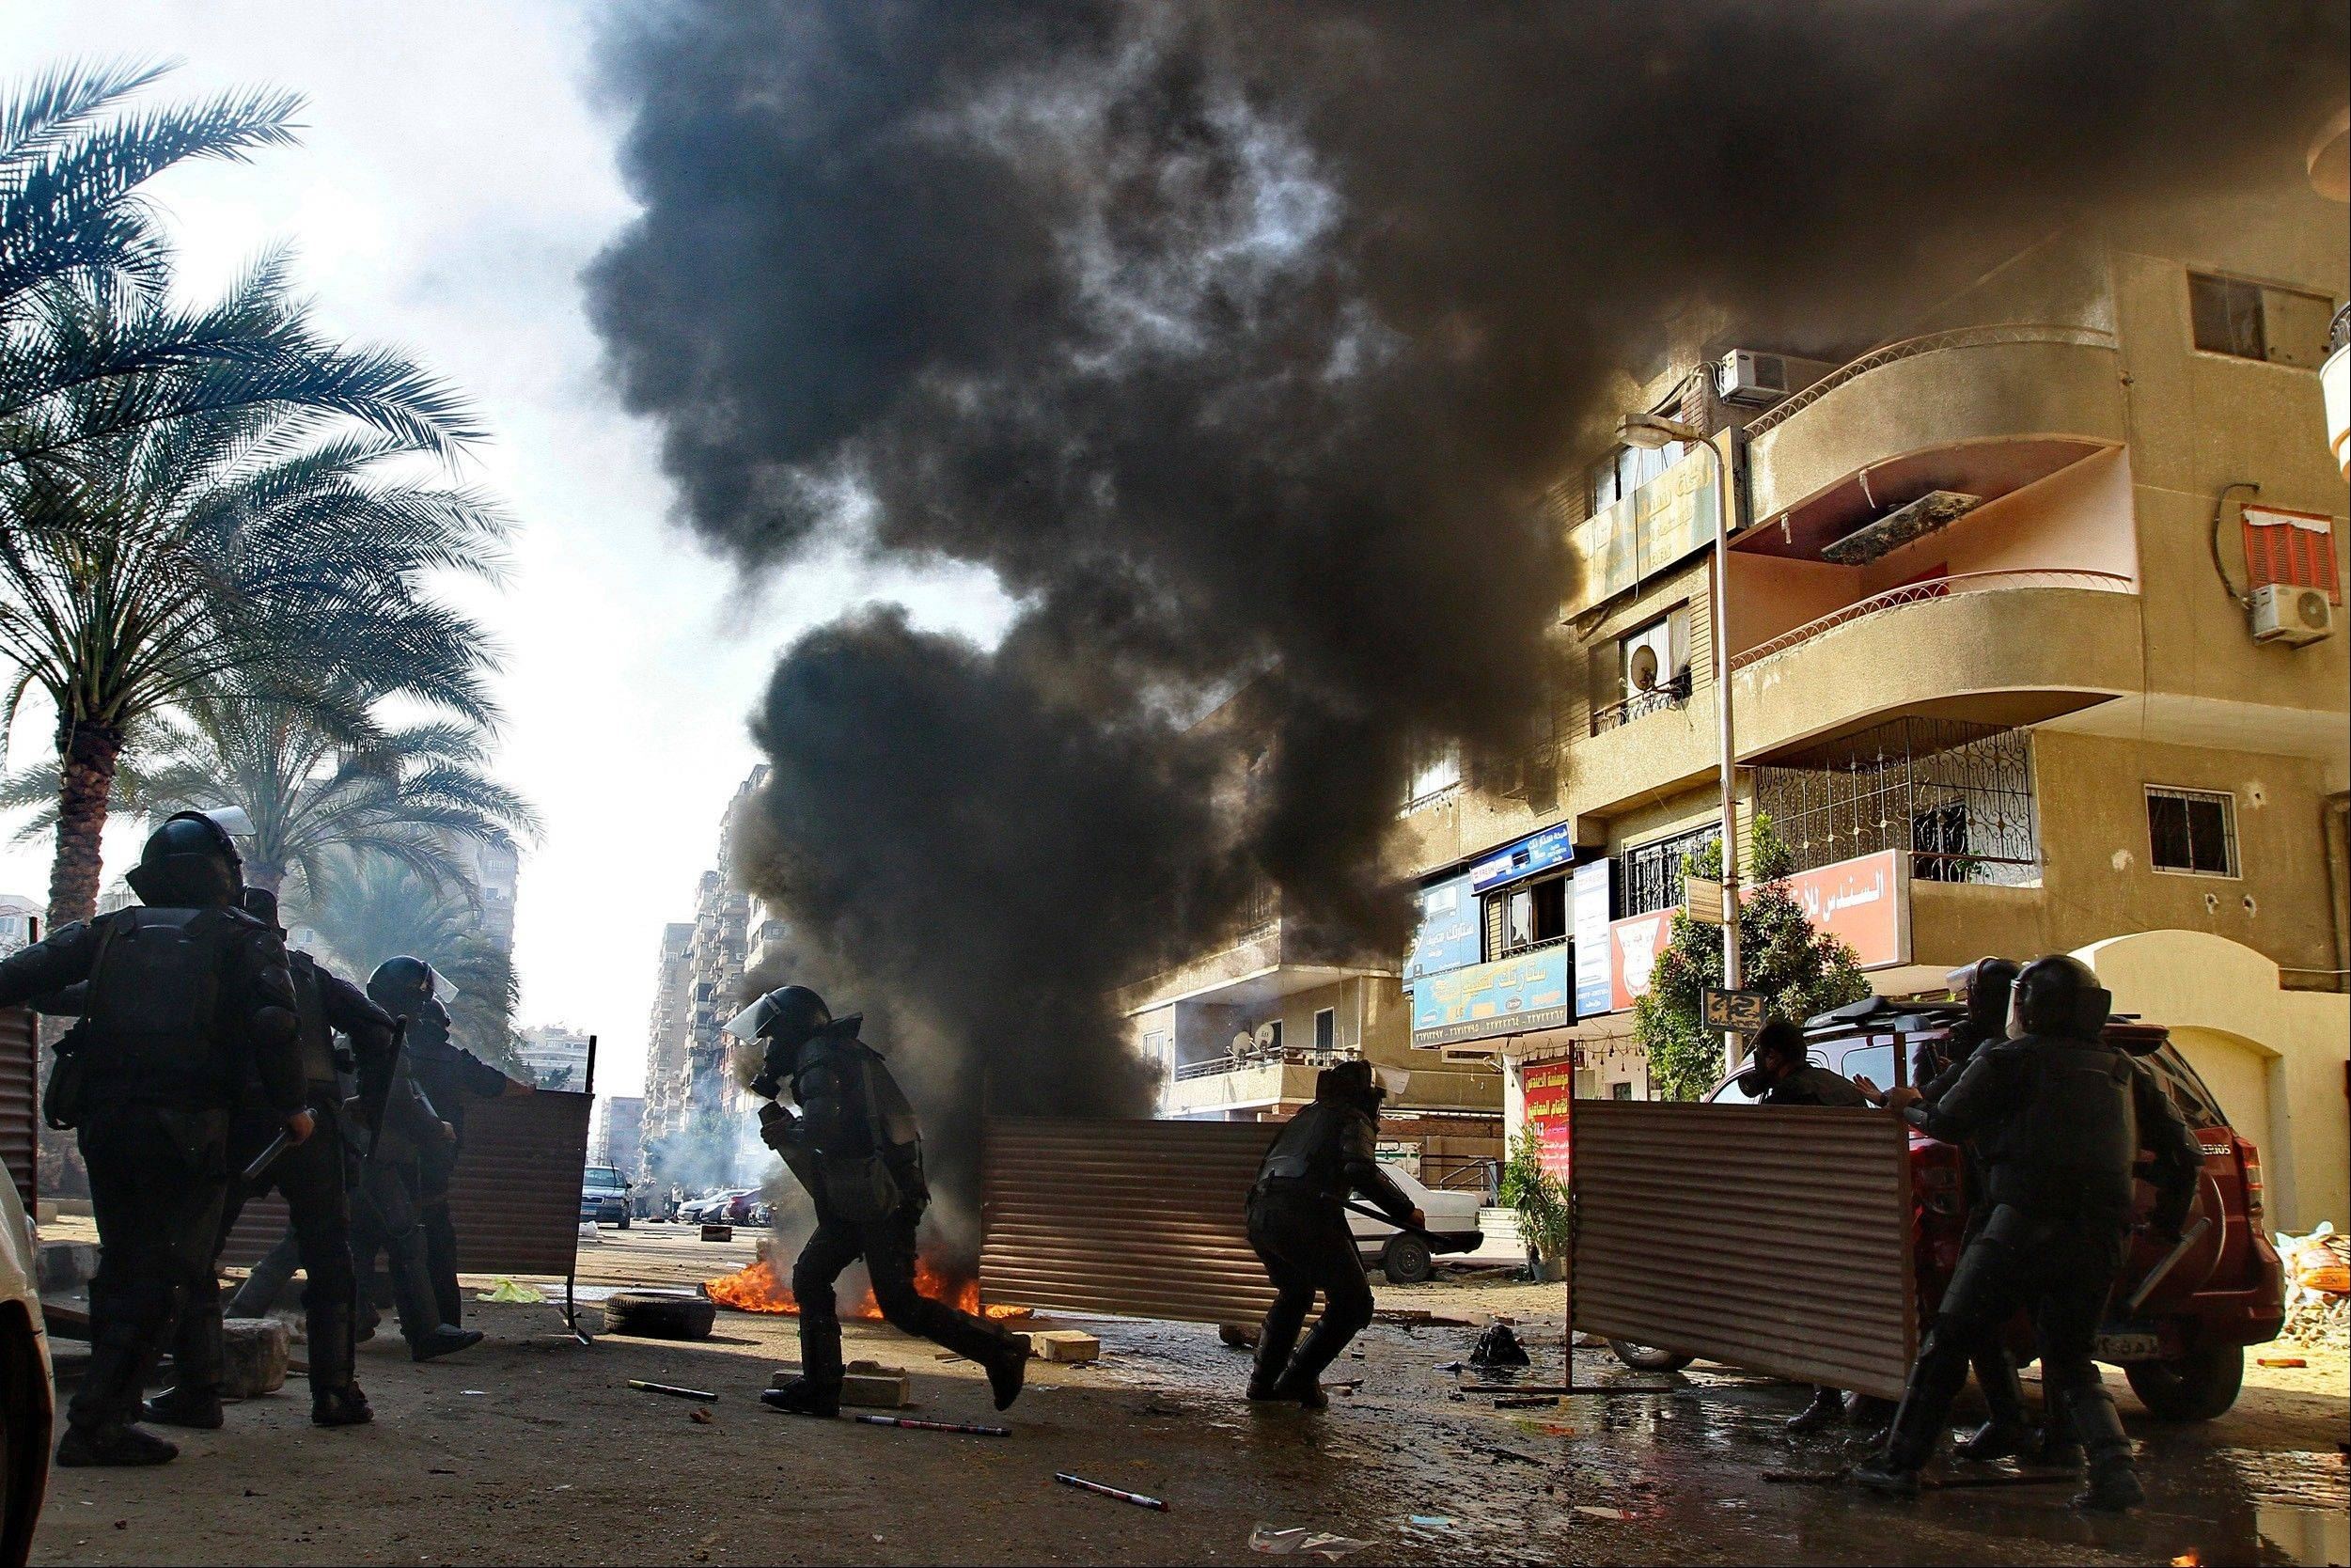 Egyptian security forces clash Friday with supporters of ousted President Mohamed Morsi in the Nasr City district of Cairo.